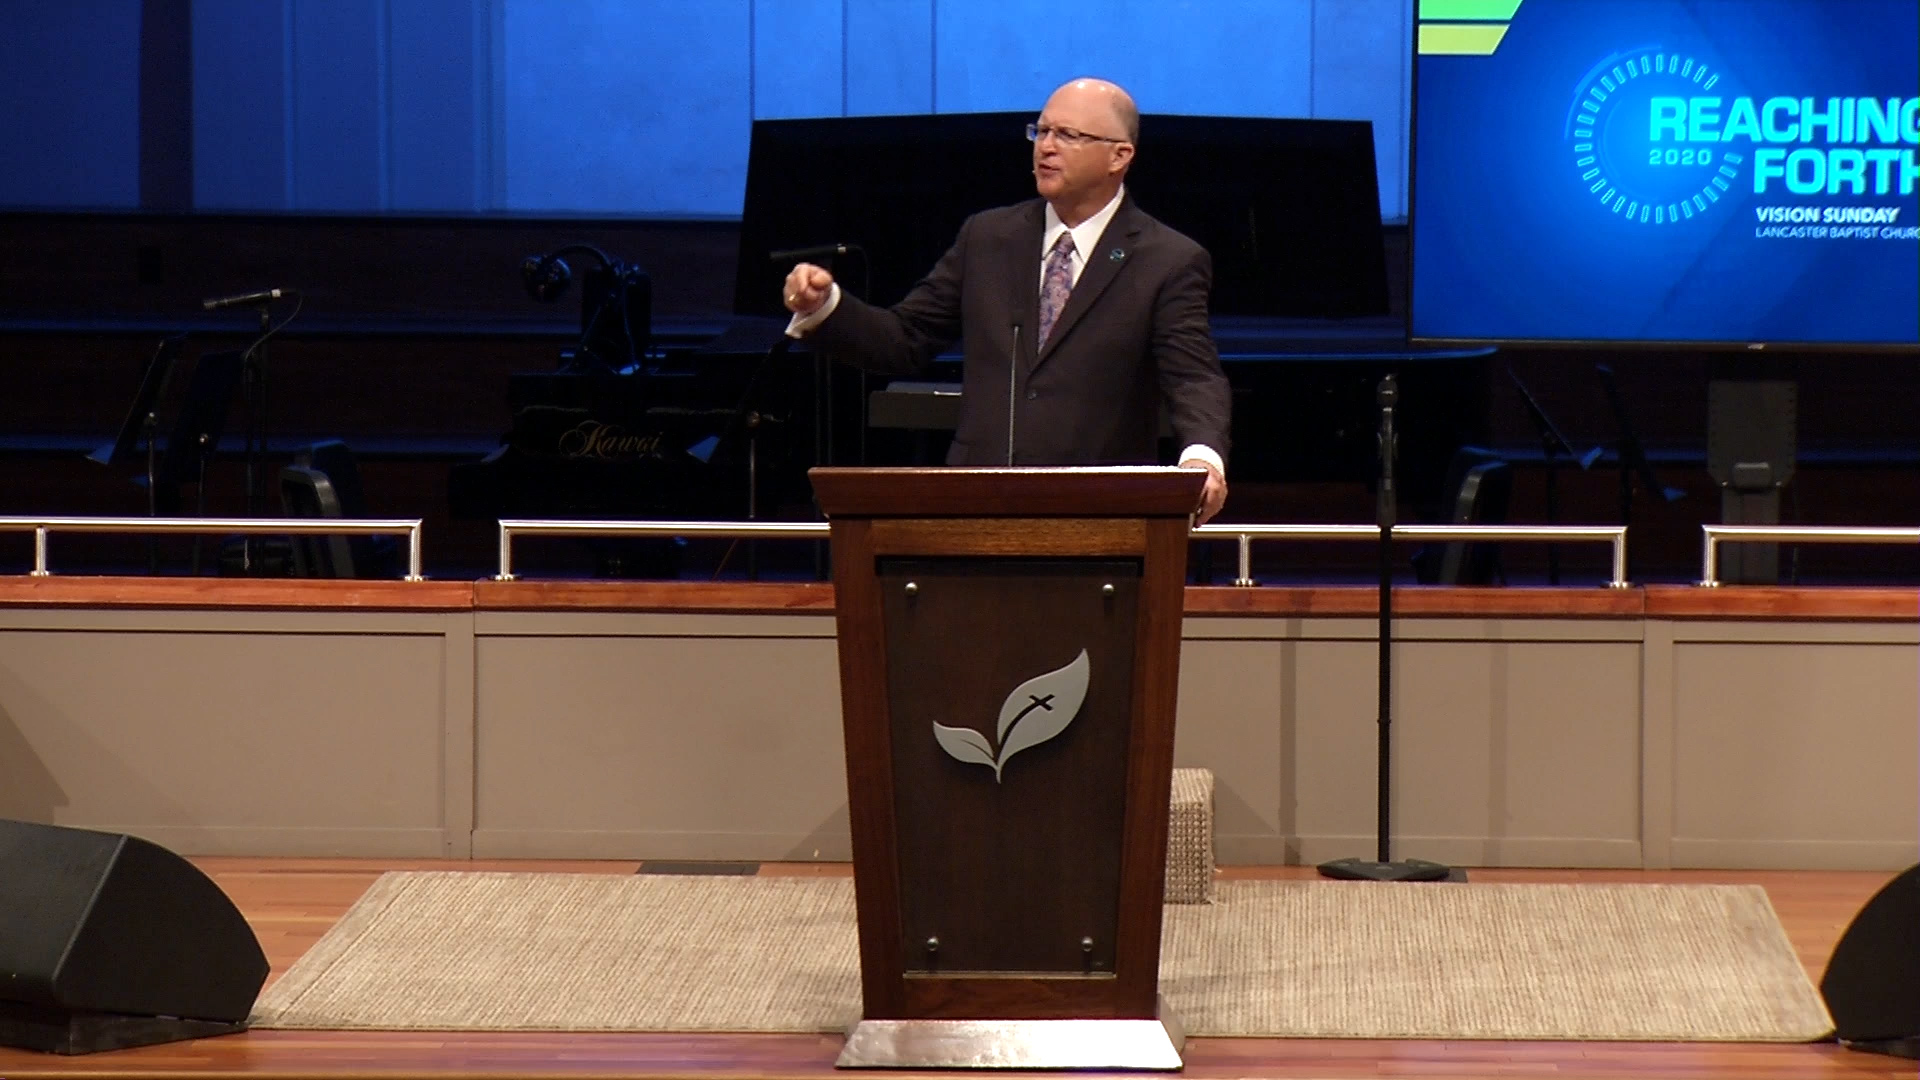 Pastor Paul Chappell: Reaching Forth Part 2